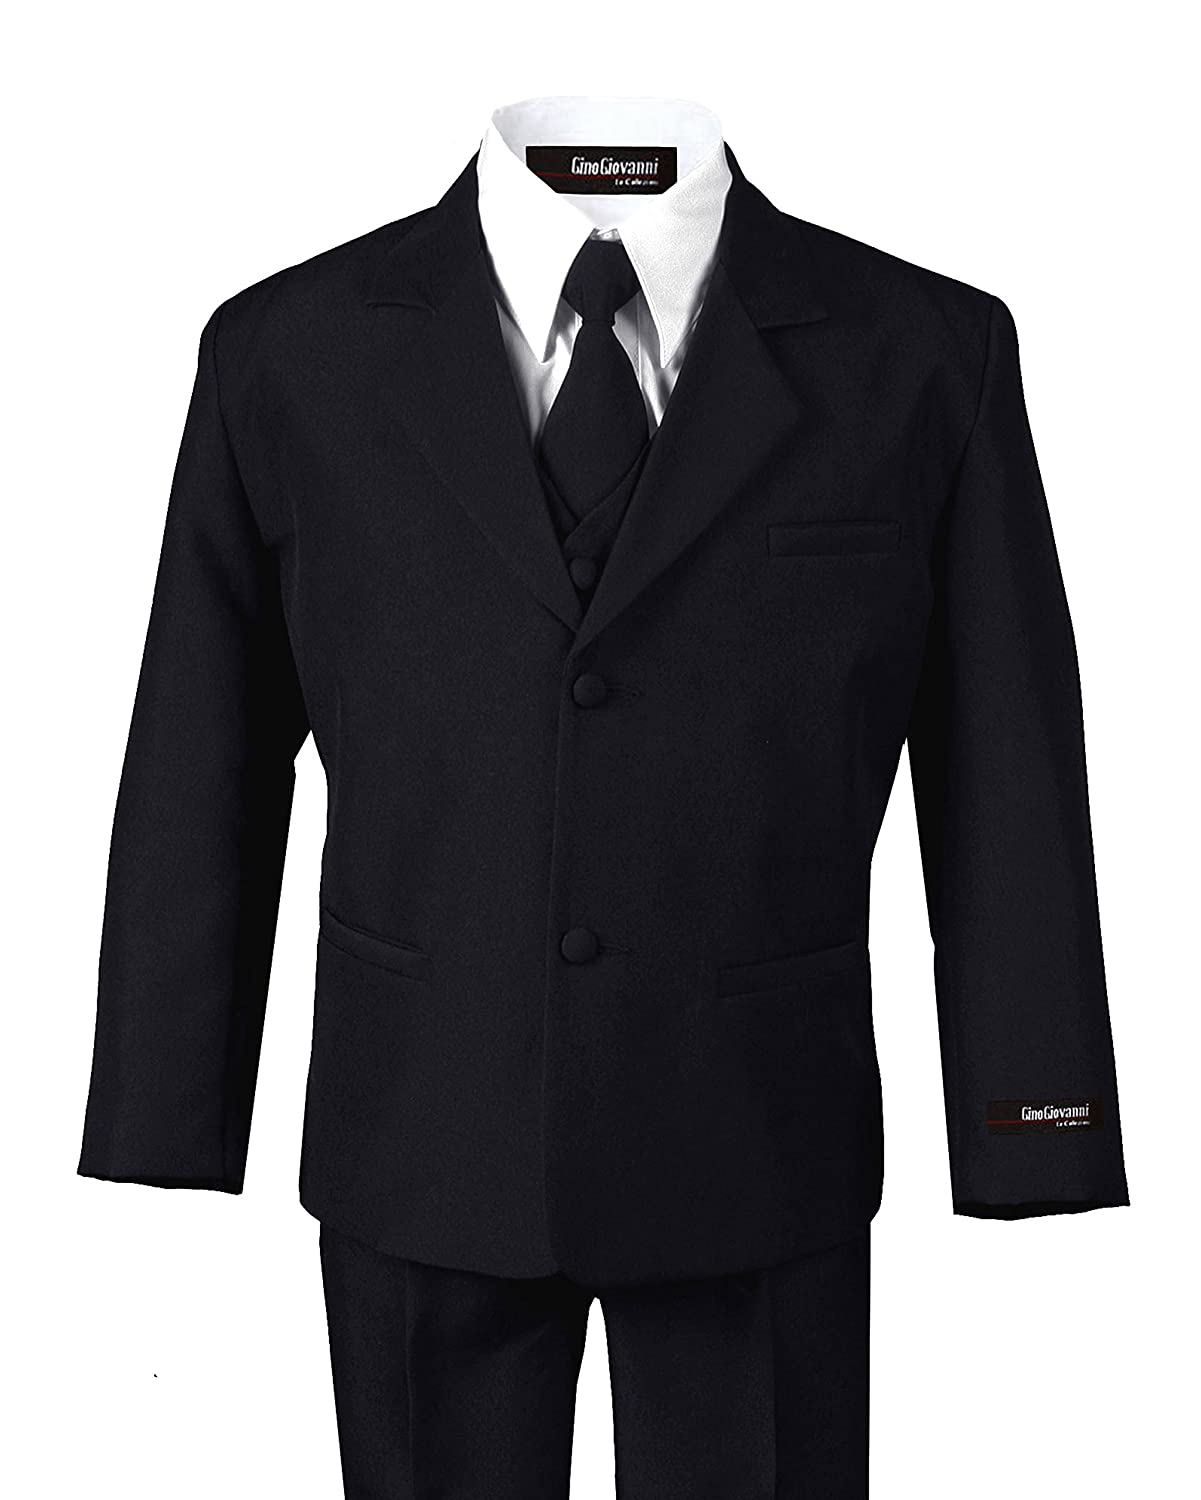 Teen Boys Designer Clothes Brand Formal Boy Suit From